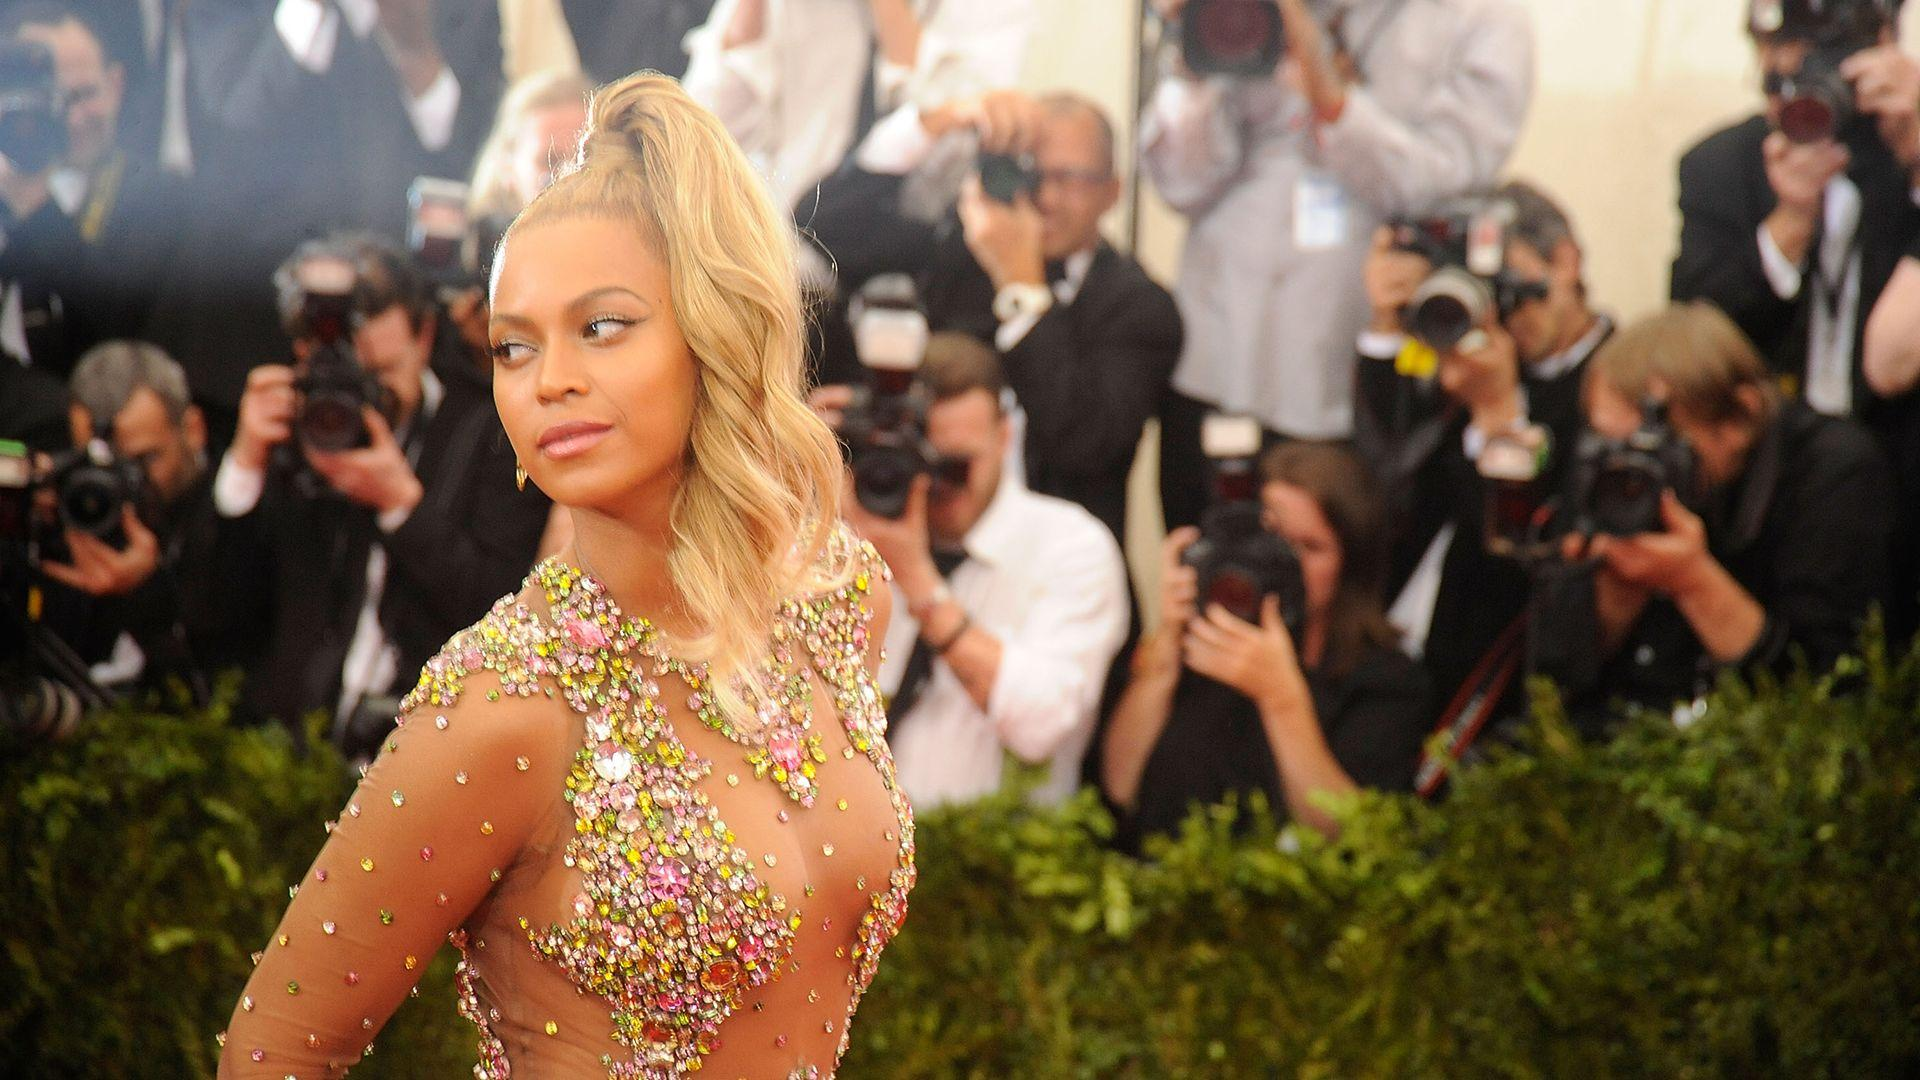 The 31 Best Boundary-Pushing Met Gala Beauty Looks